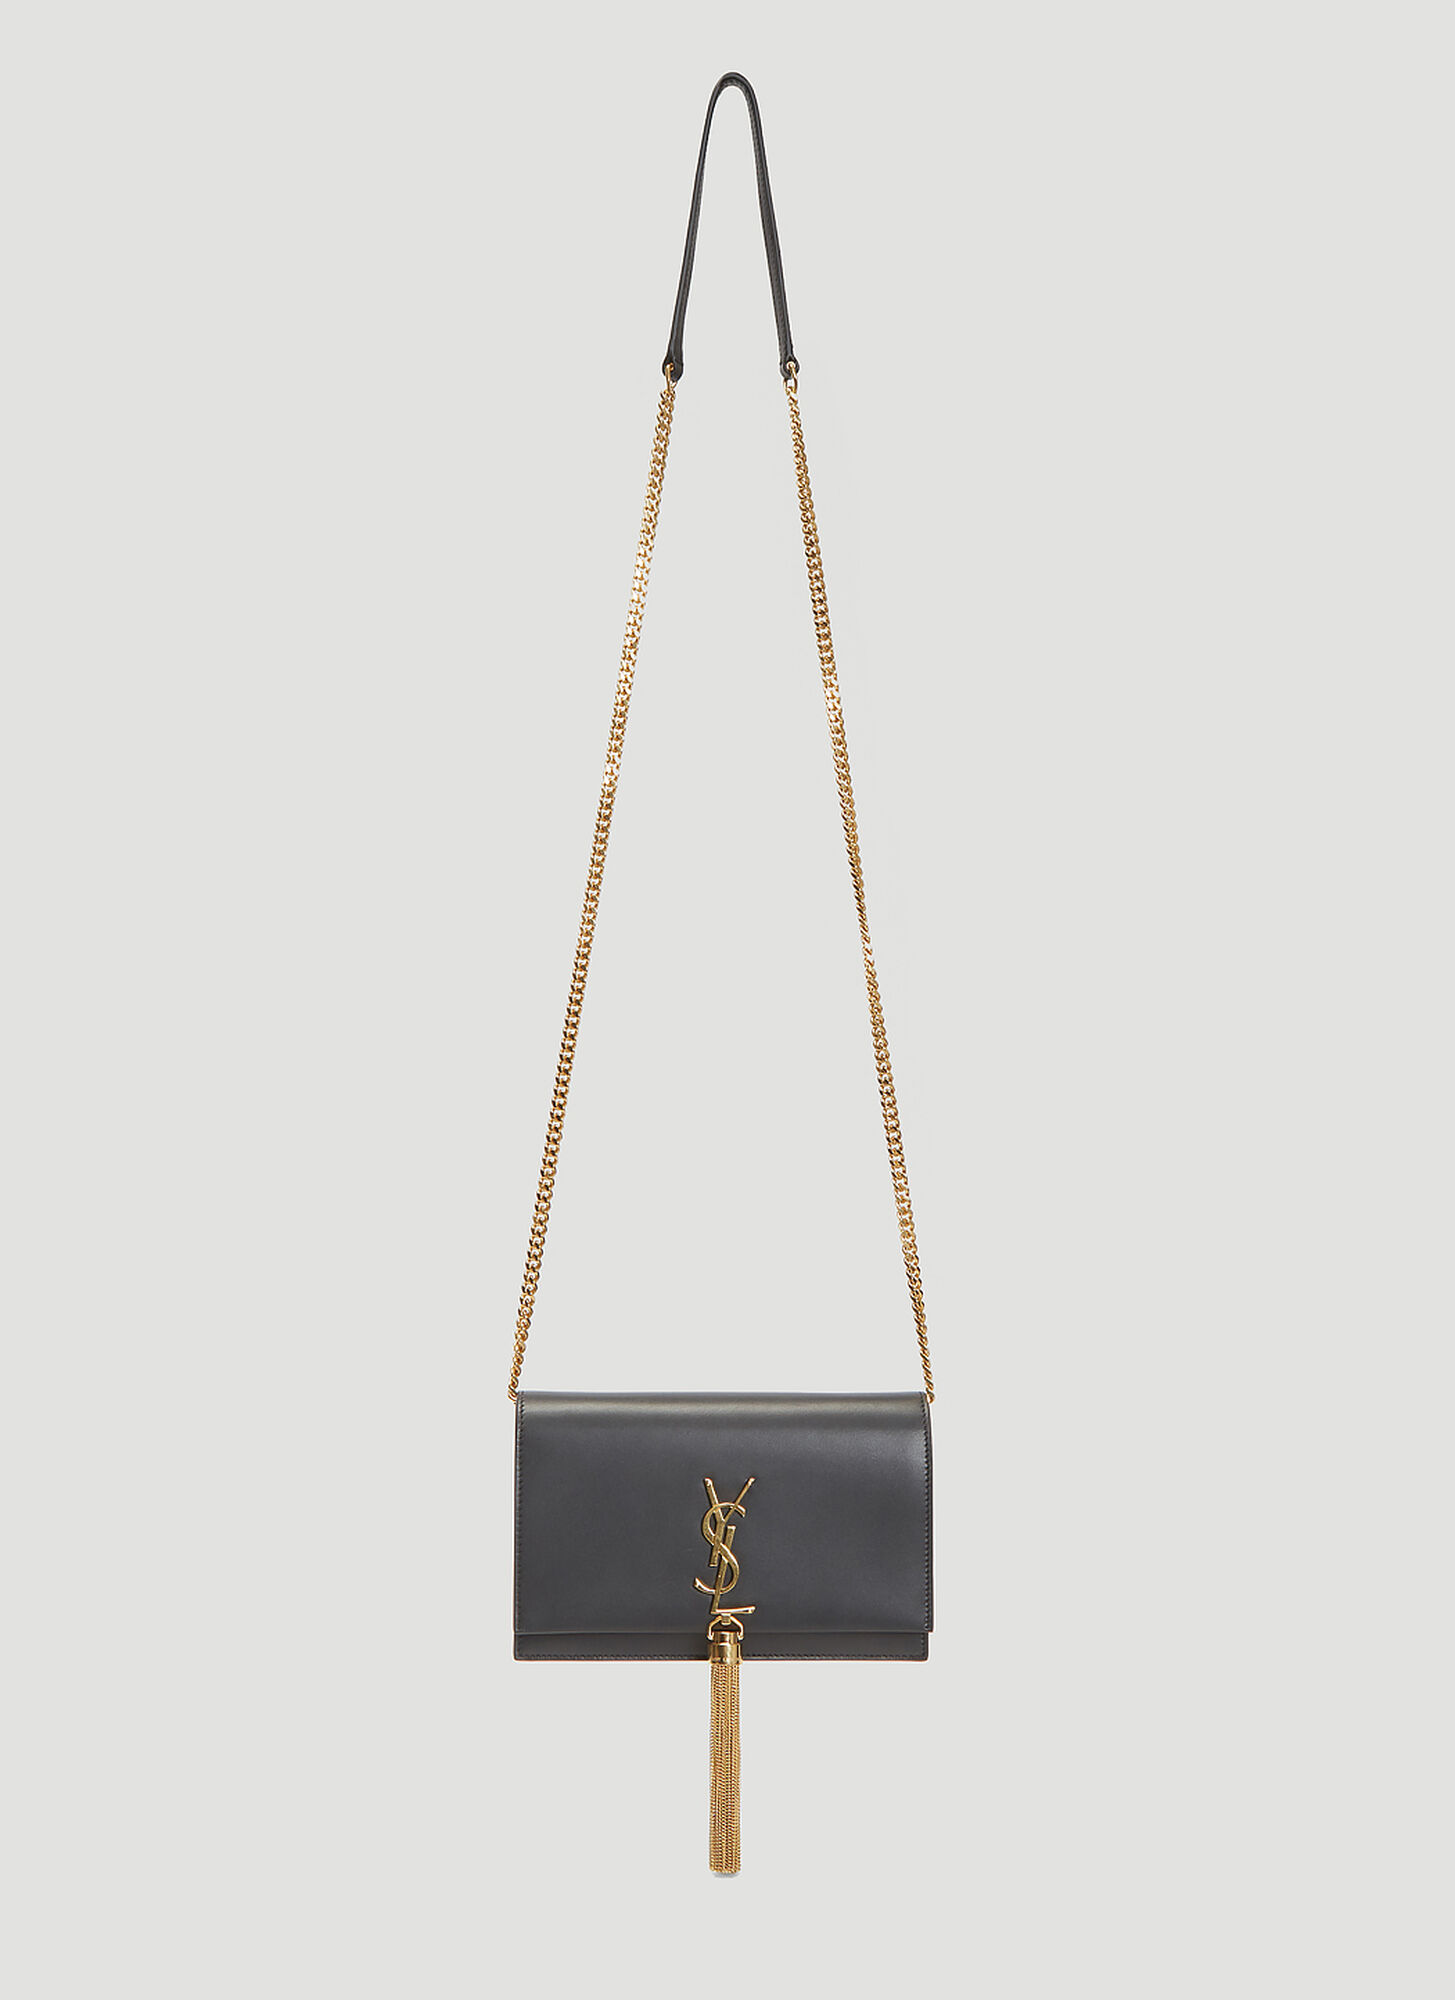 Saint Laurent Small Kate Tassel Bag in Black